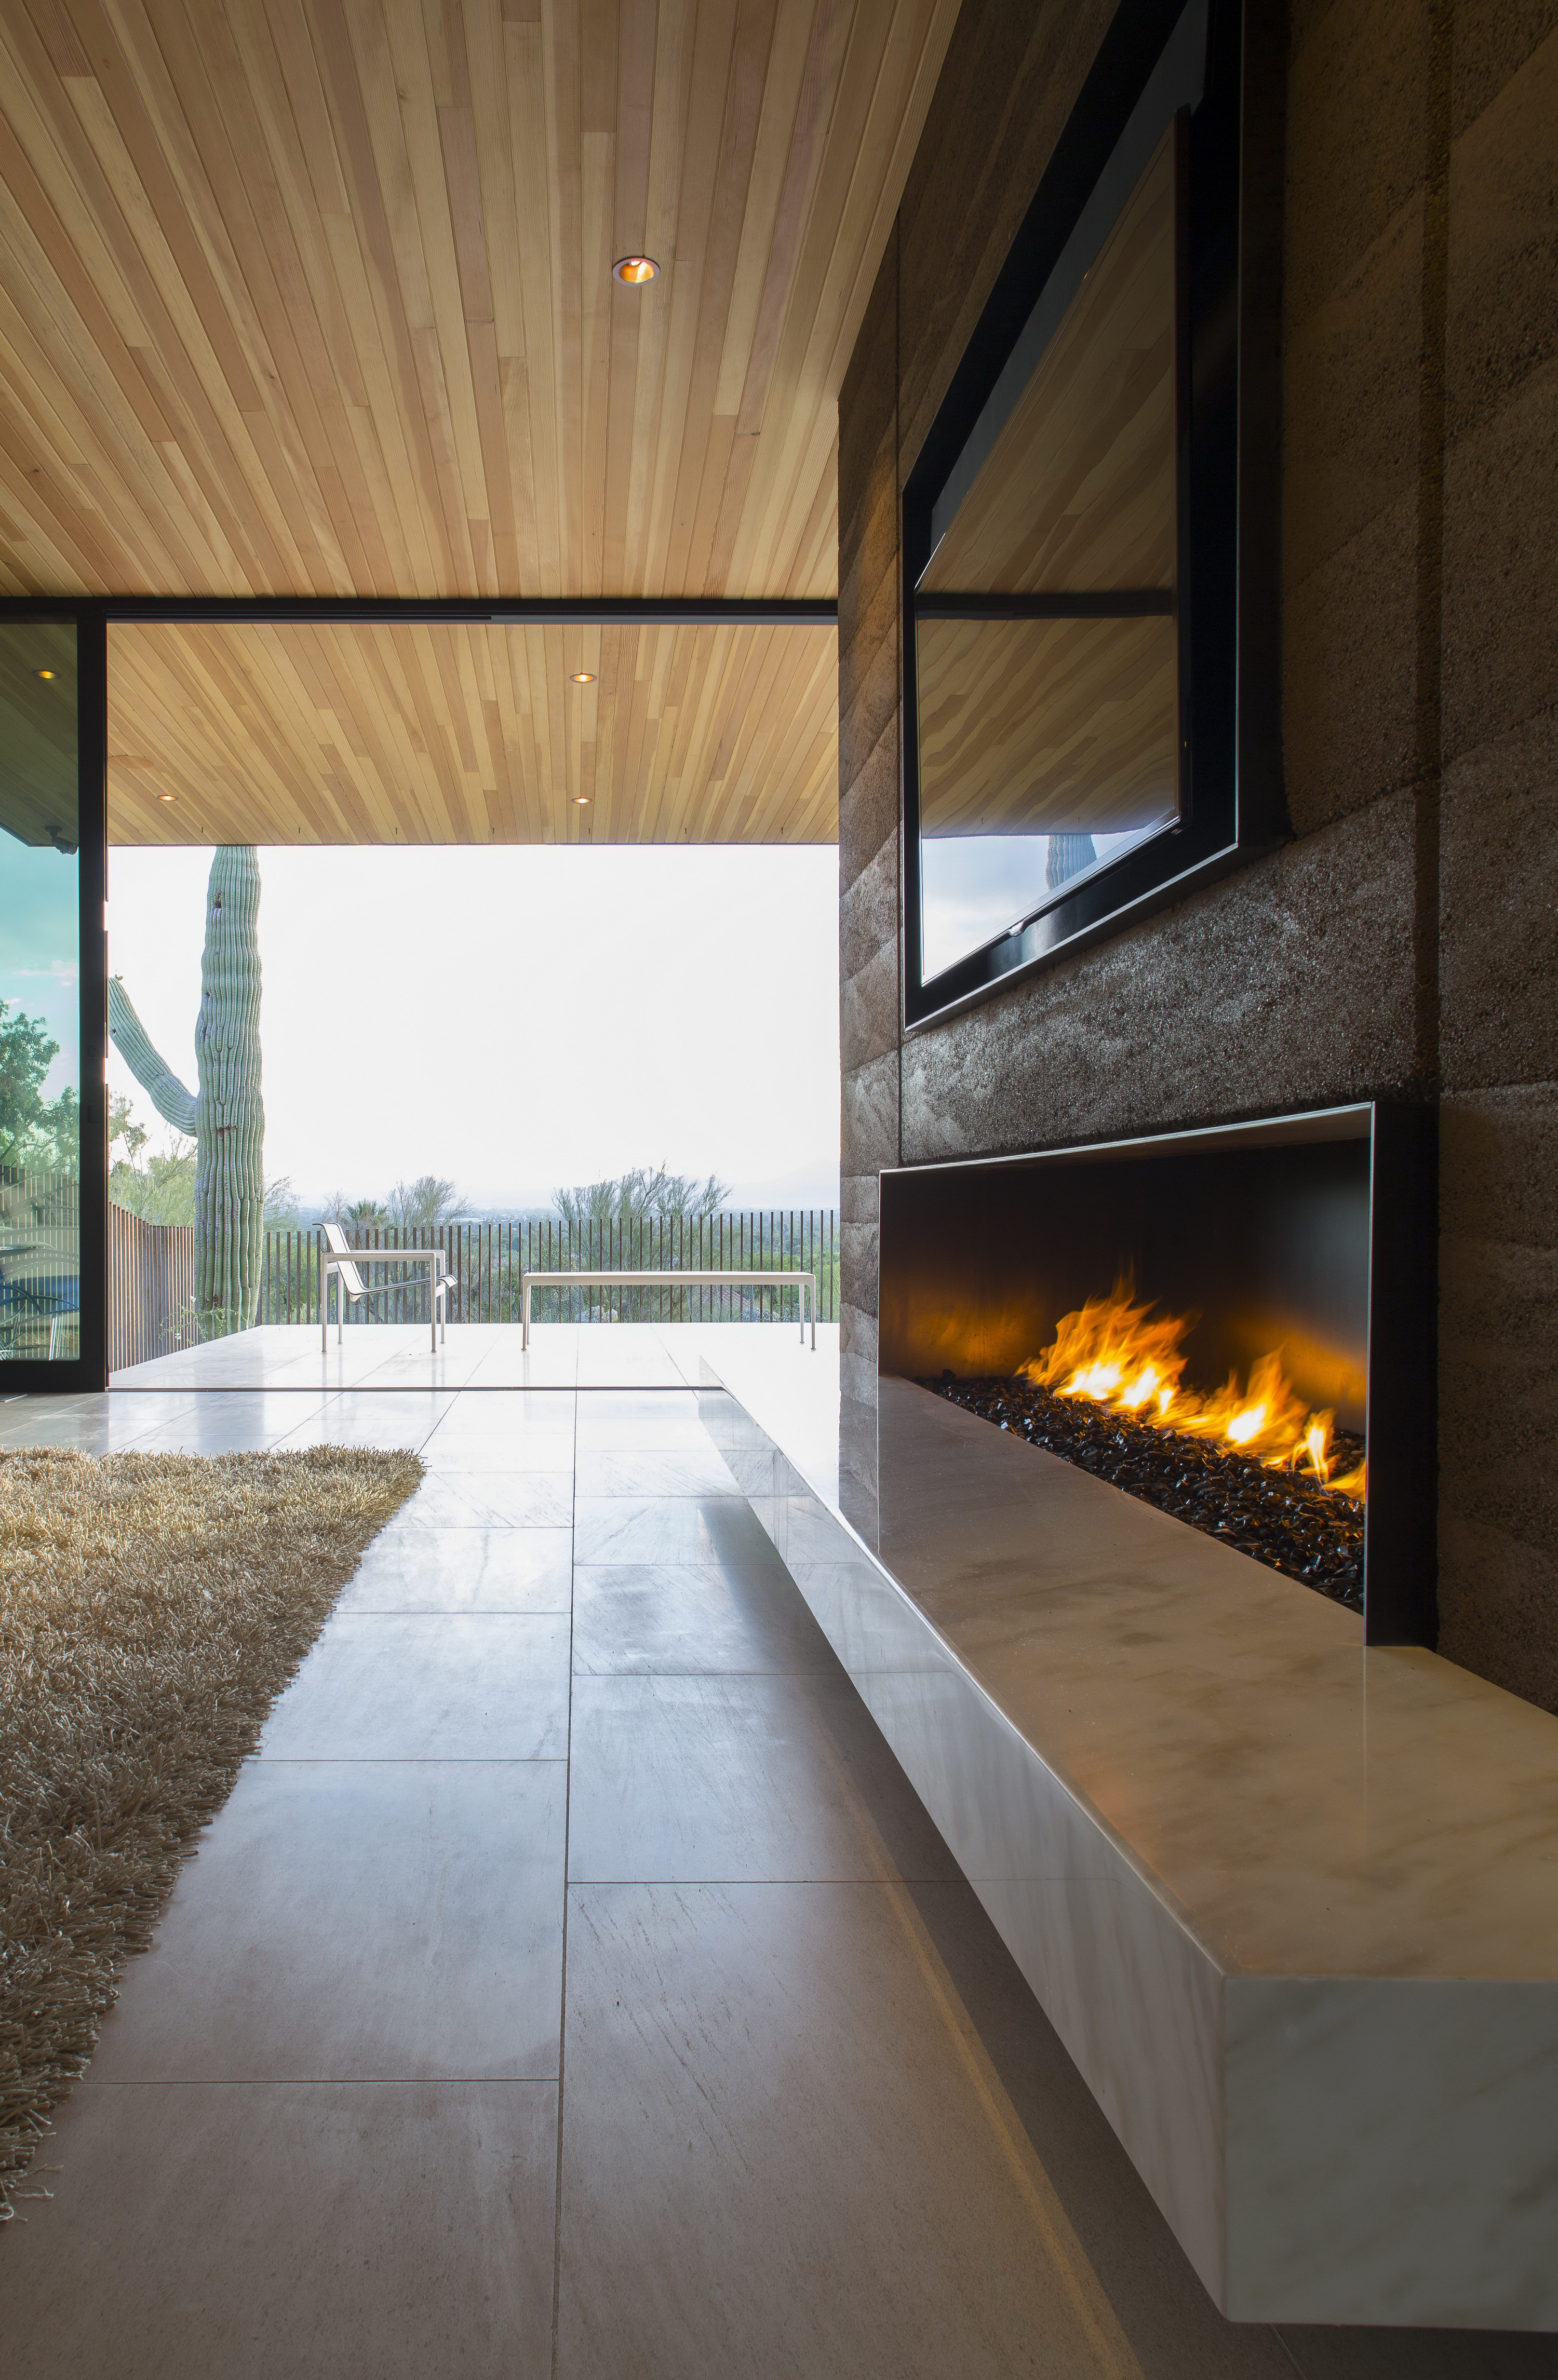 Rammed Earth Modern by Kendle Design Collaborative | Wowow ... on compressed earth block homes, modern earth sheltered homes, earth cement floors in homes, modern ranch style house designs, earth natural built homes, modern home design,